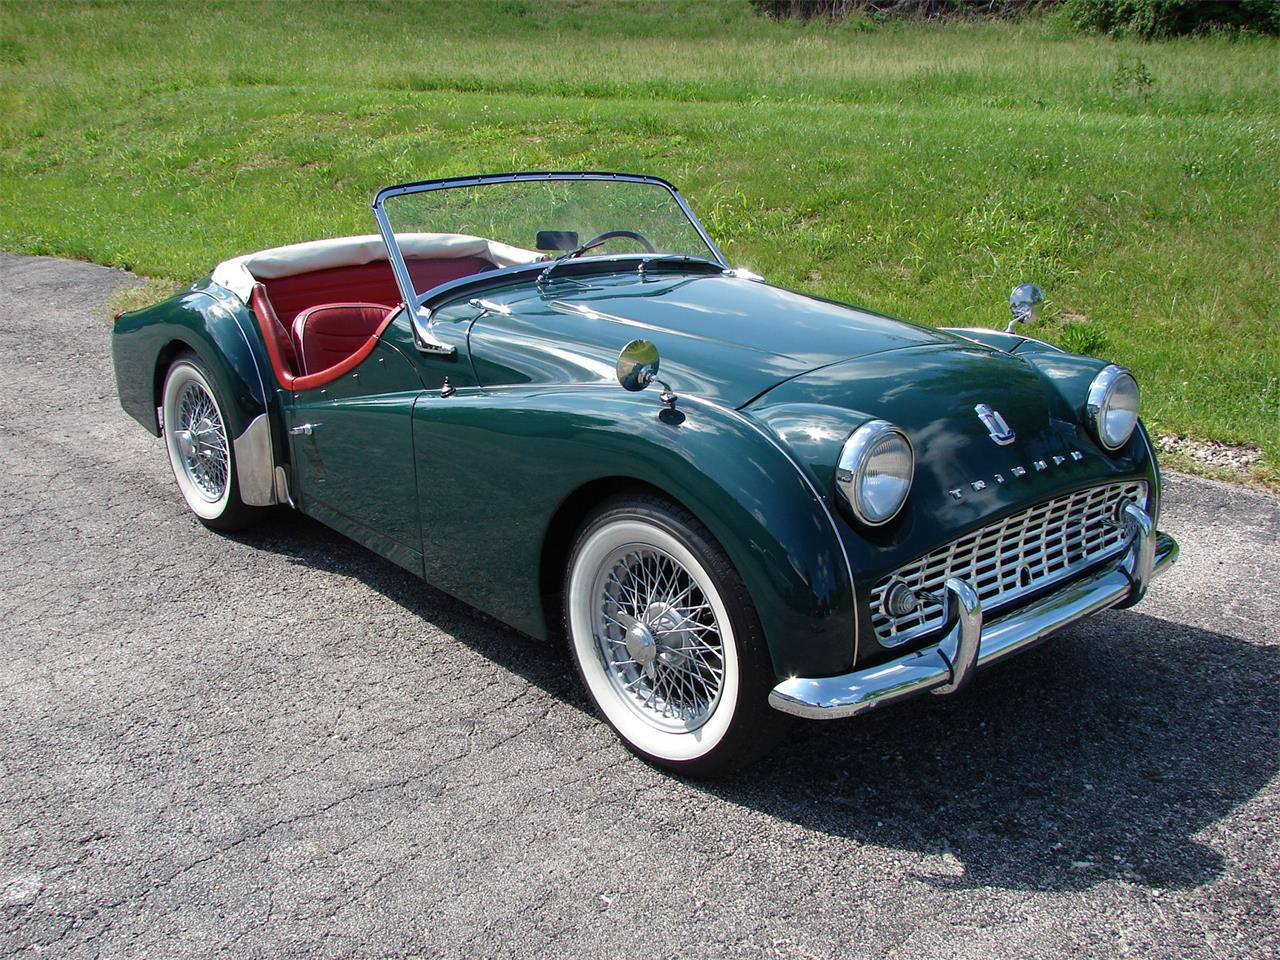 For Sale: 1963 Triumph TR3B in Washington, Missouri